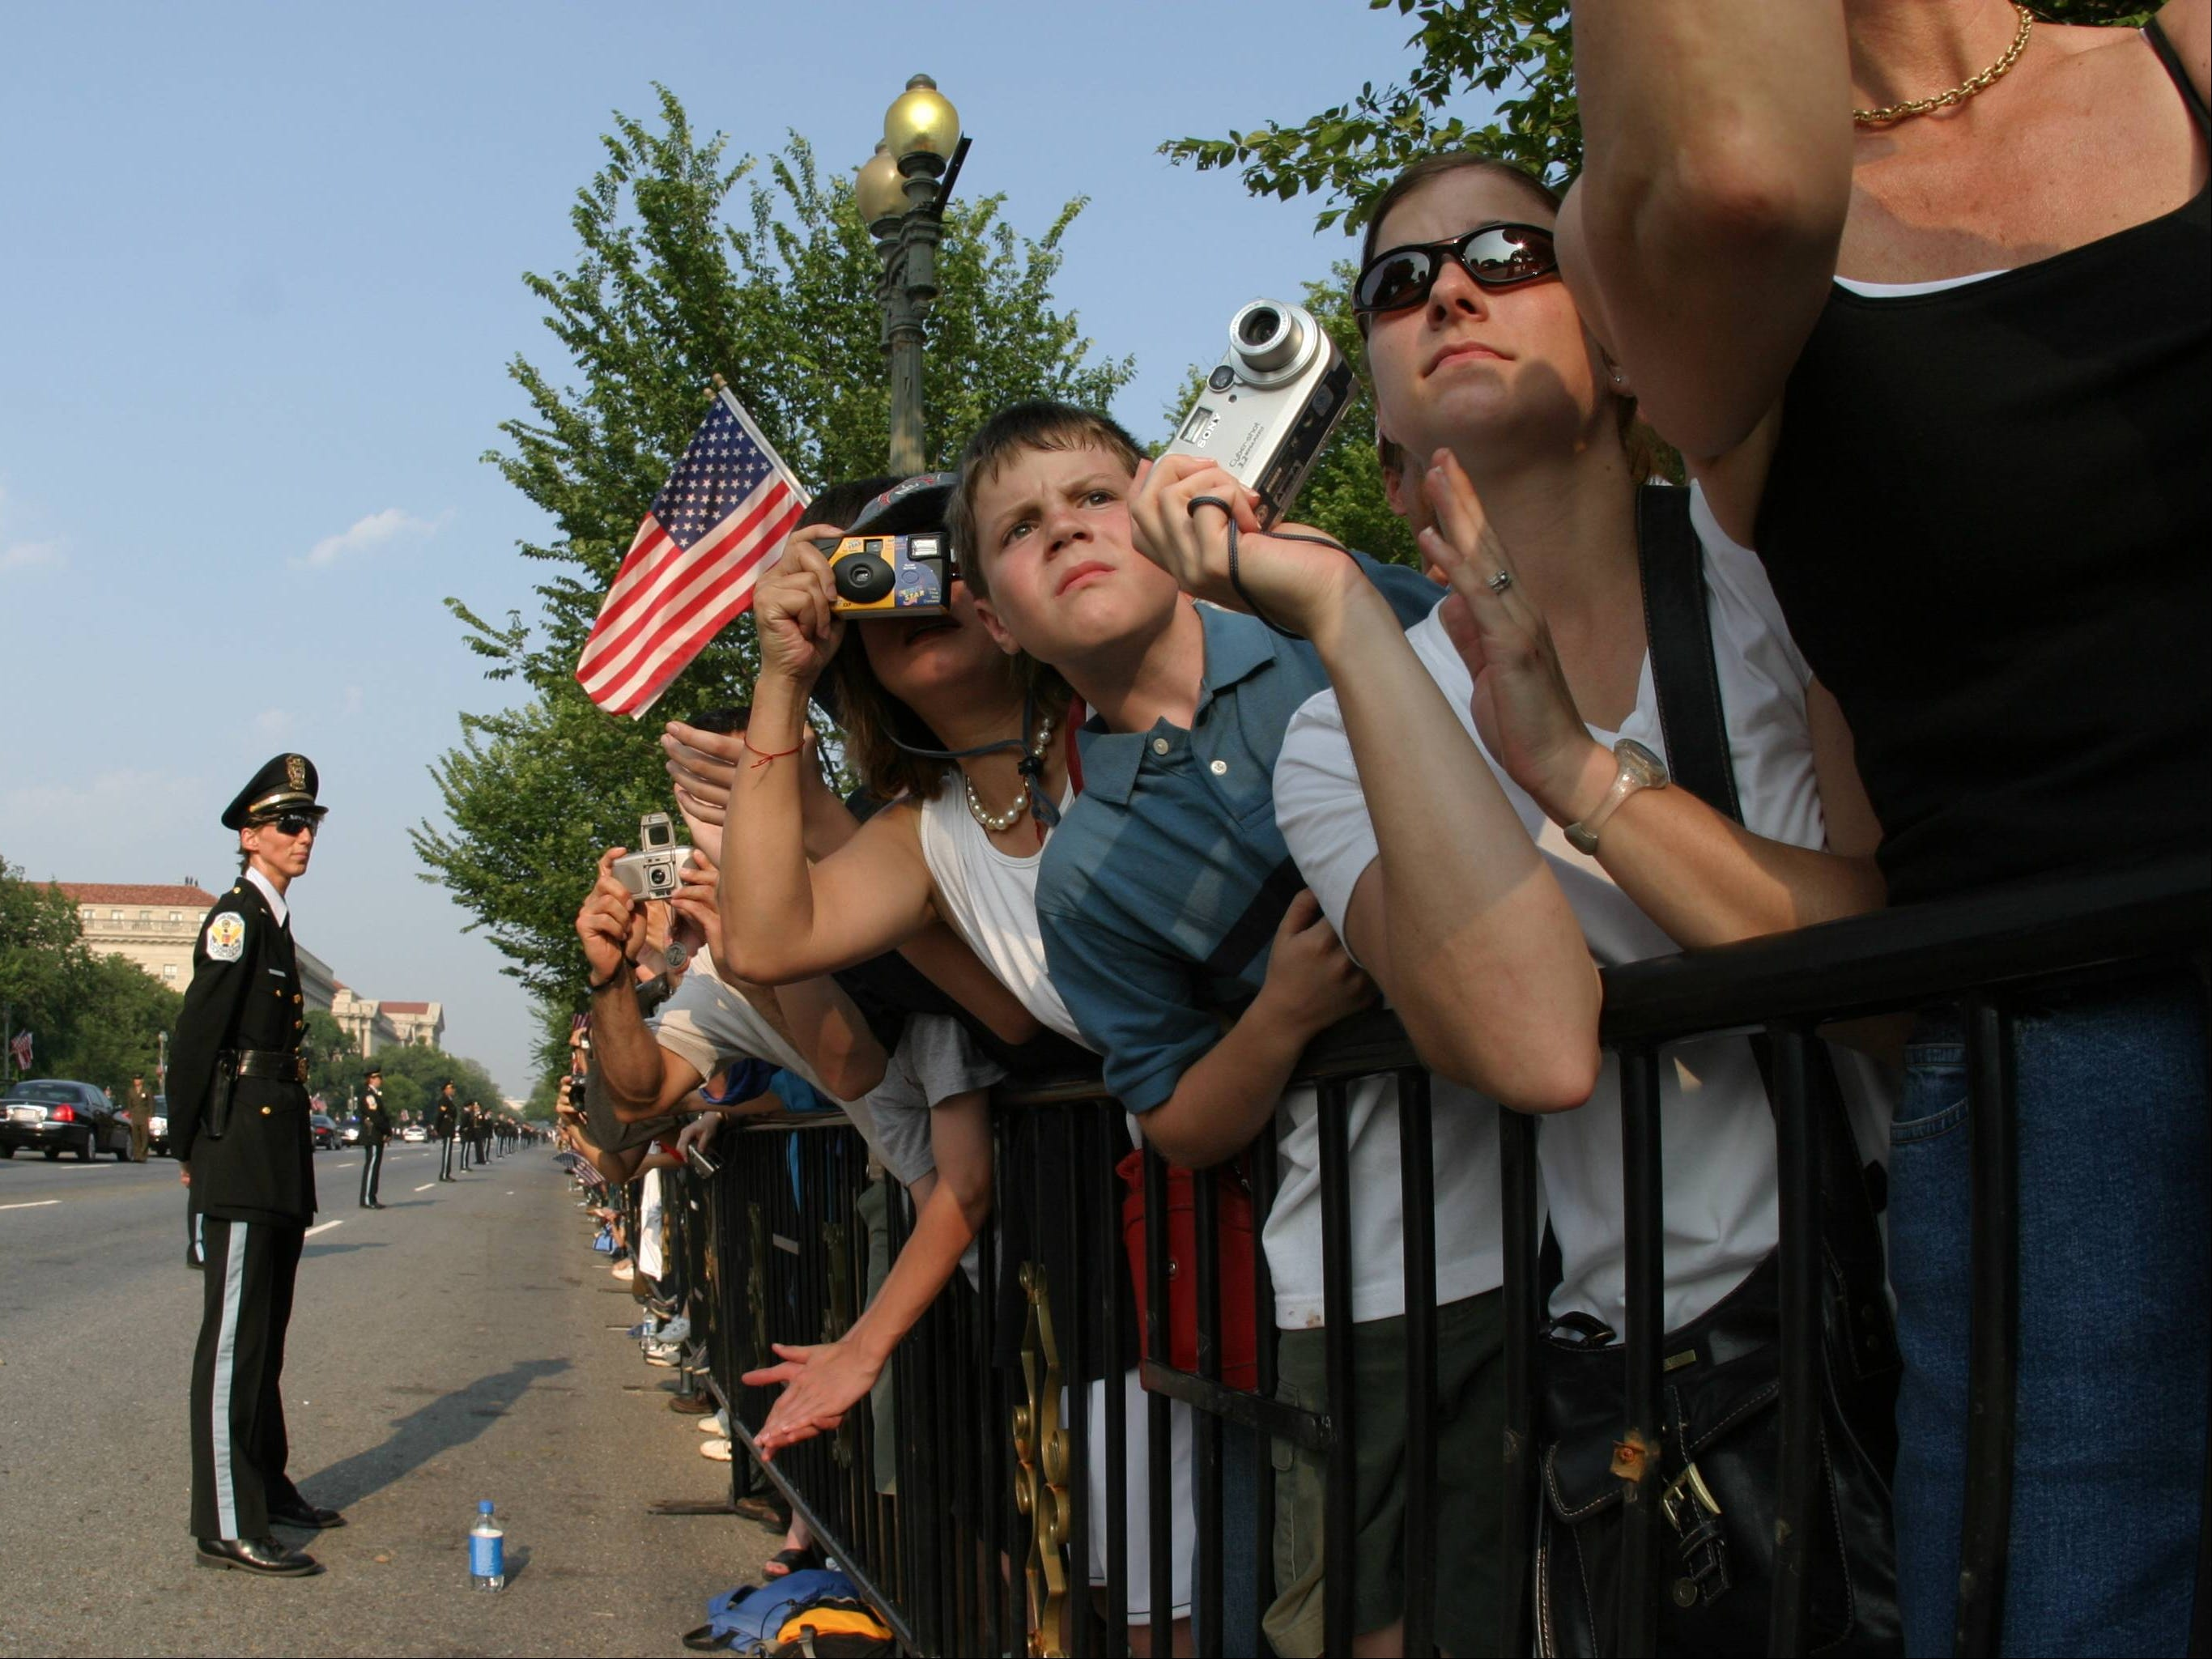 Spectators watch the coffin containing the remains of former President Ronald Reagan  placed on a caisson on Constitution Ave. near the White House, June 9, 2004, in Washington.